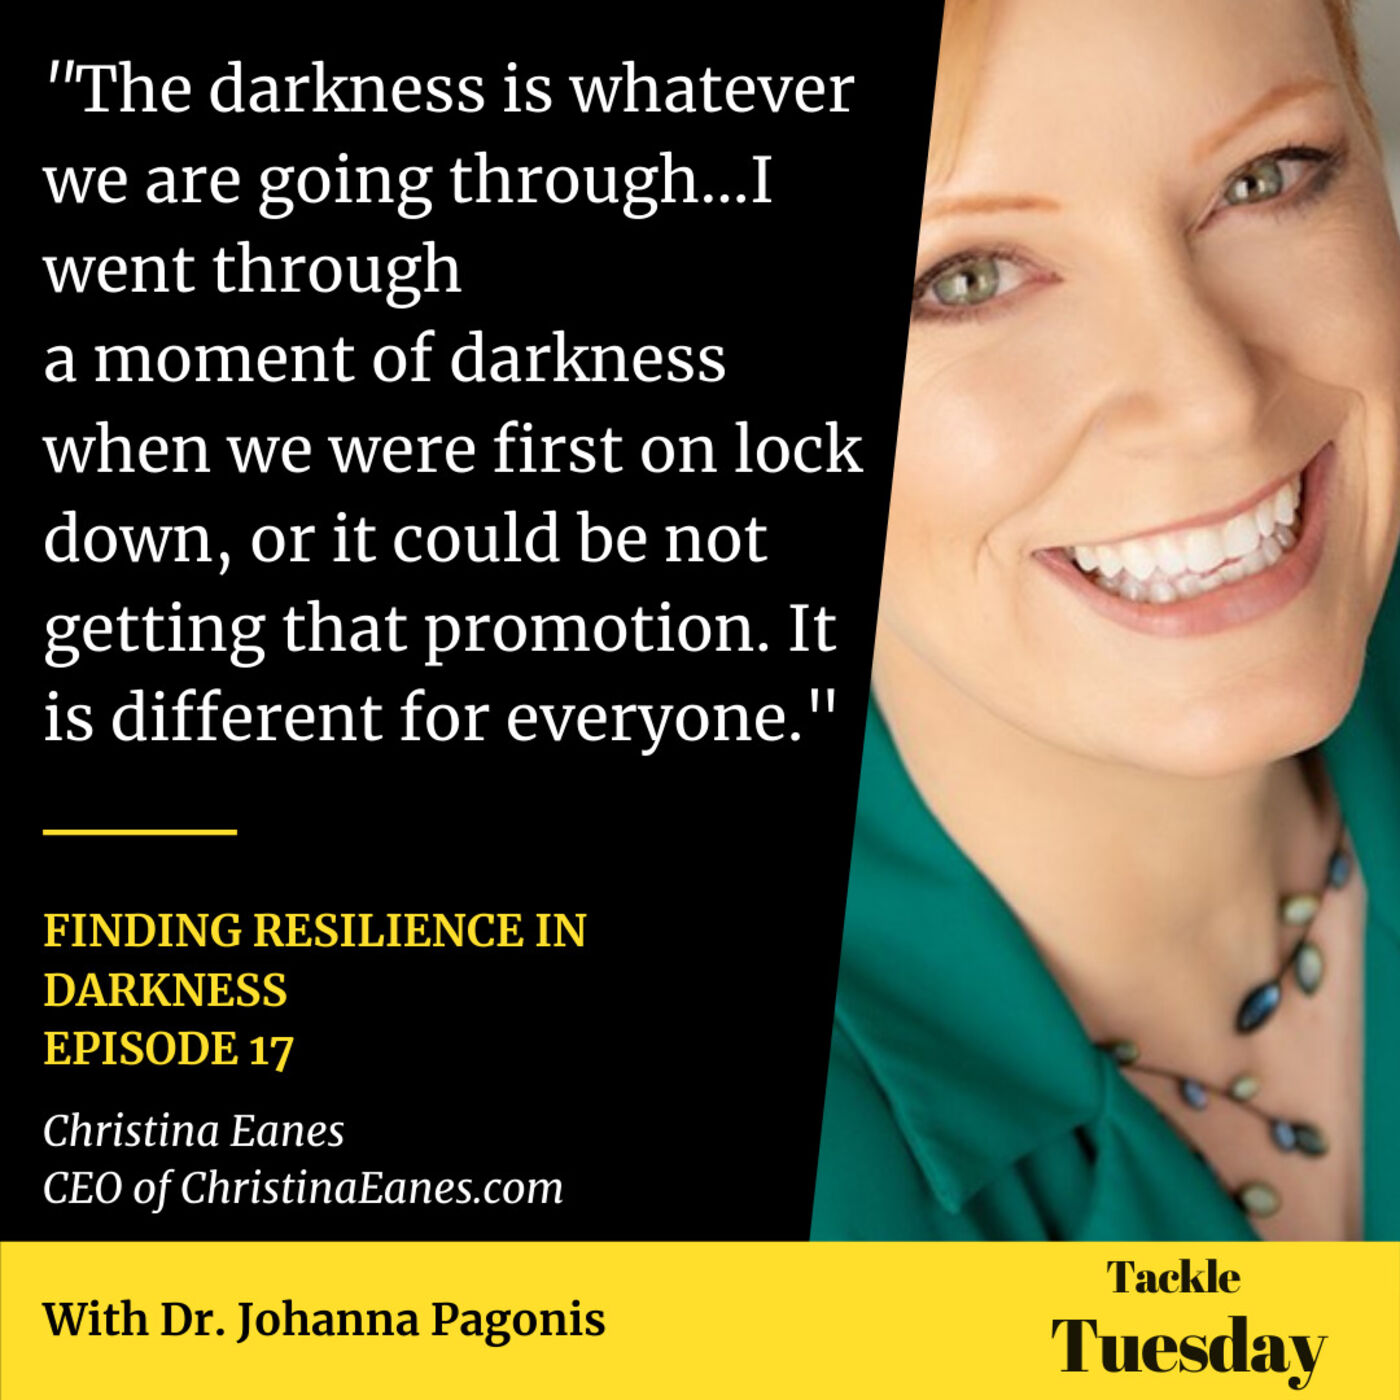 Ep. 17 Finding Resilience in Darkness